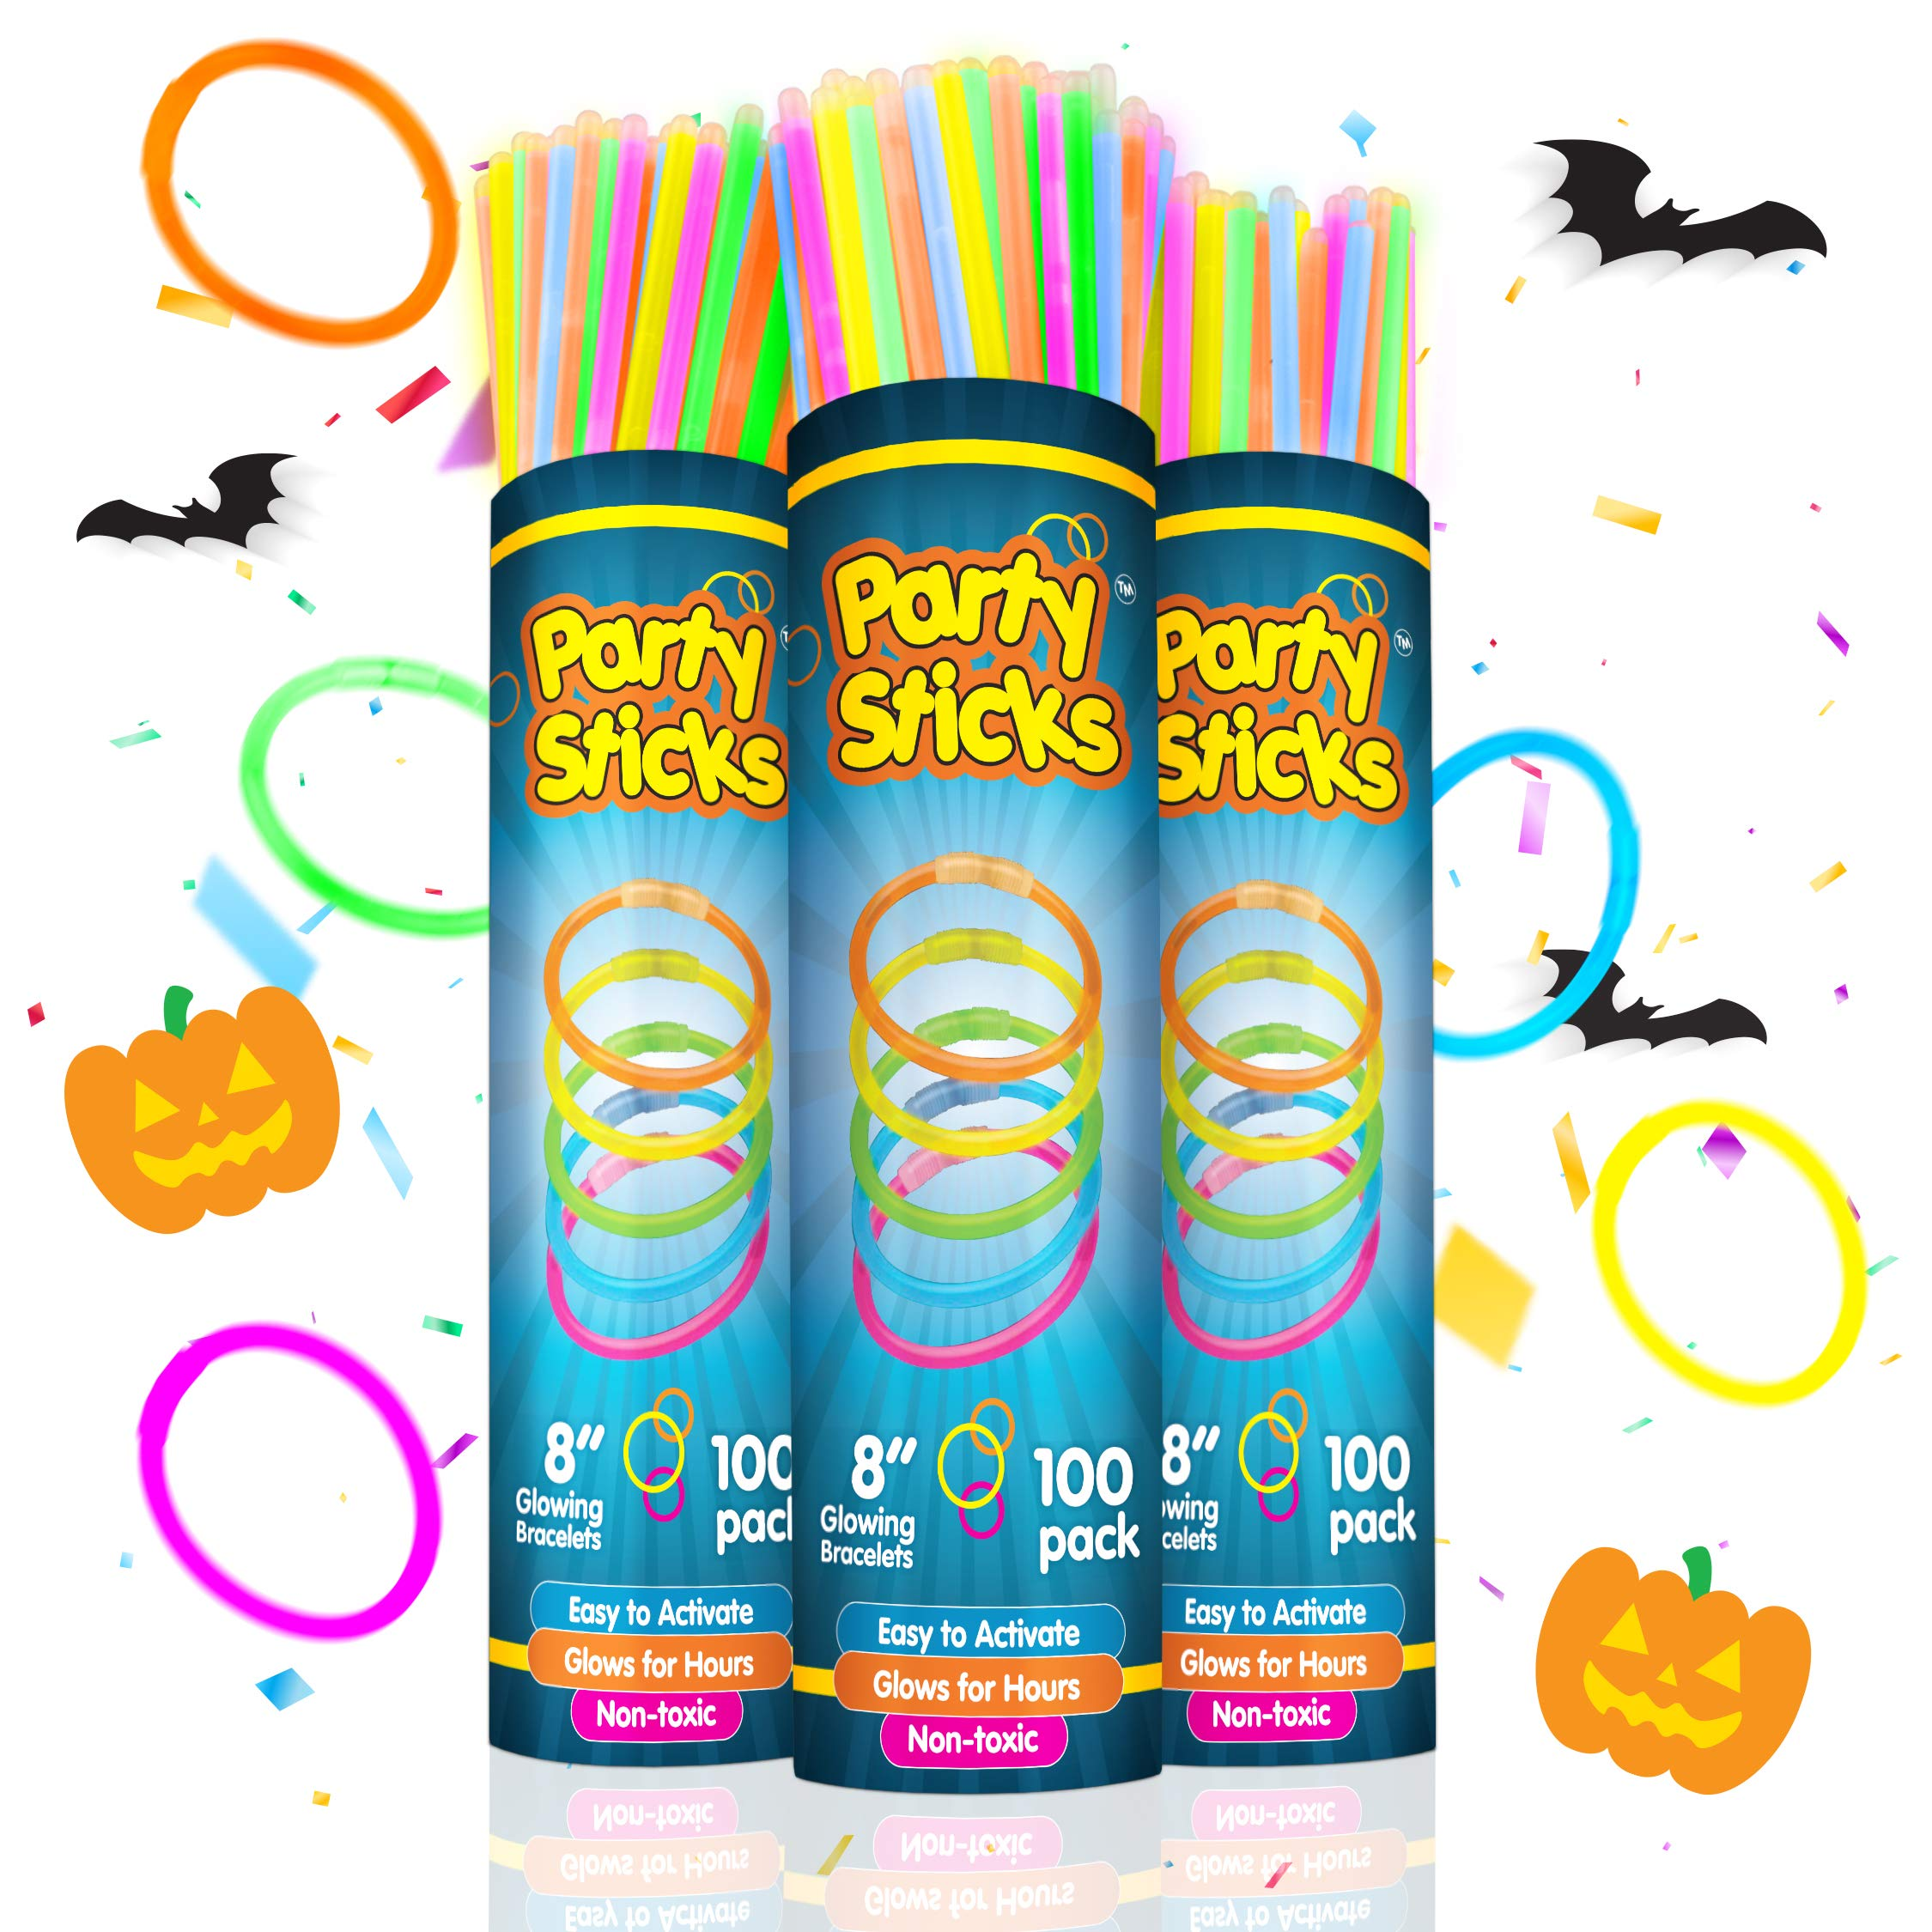 Party Sticks Glow Sticks Jewelry Bulk Party Favors 300pk and Connectors - 8'' Glow in the Dark Party Supplies, Neon Party Glow Necklaces and Glow Bracelets for Kids and Adults by PartySticks